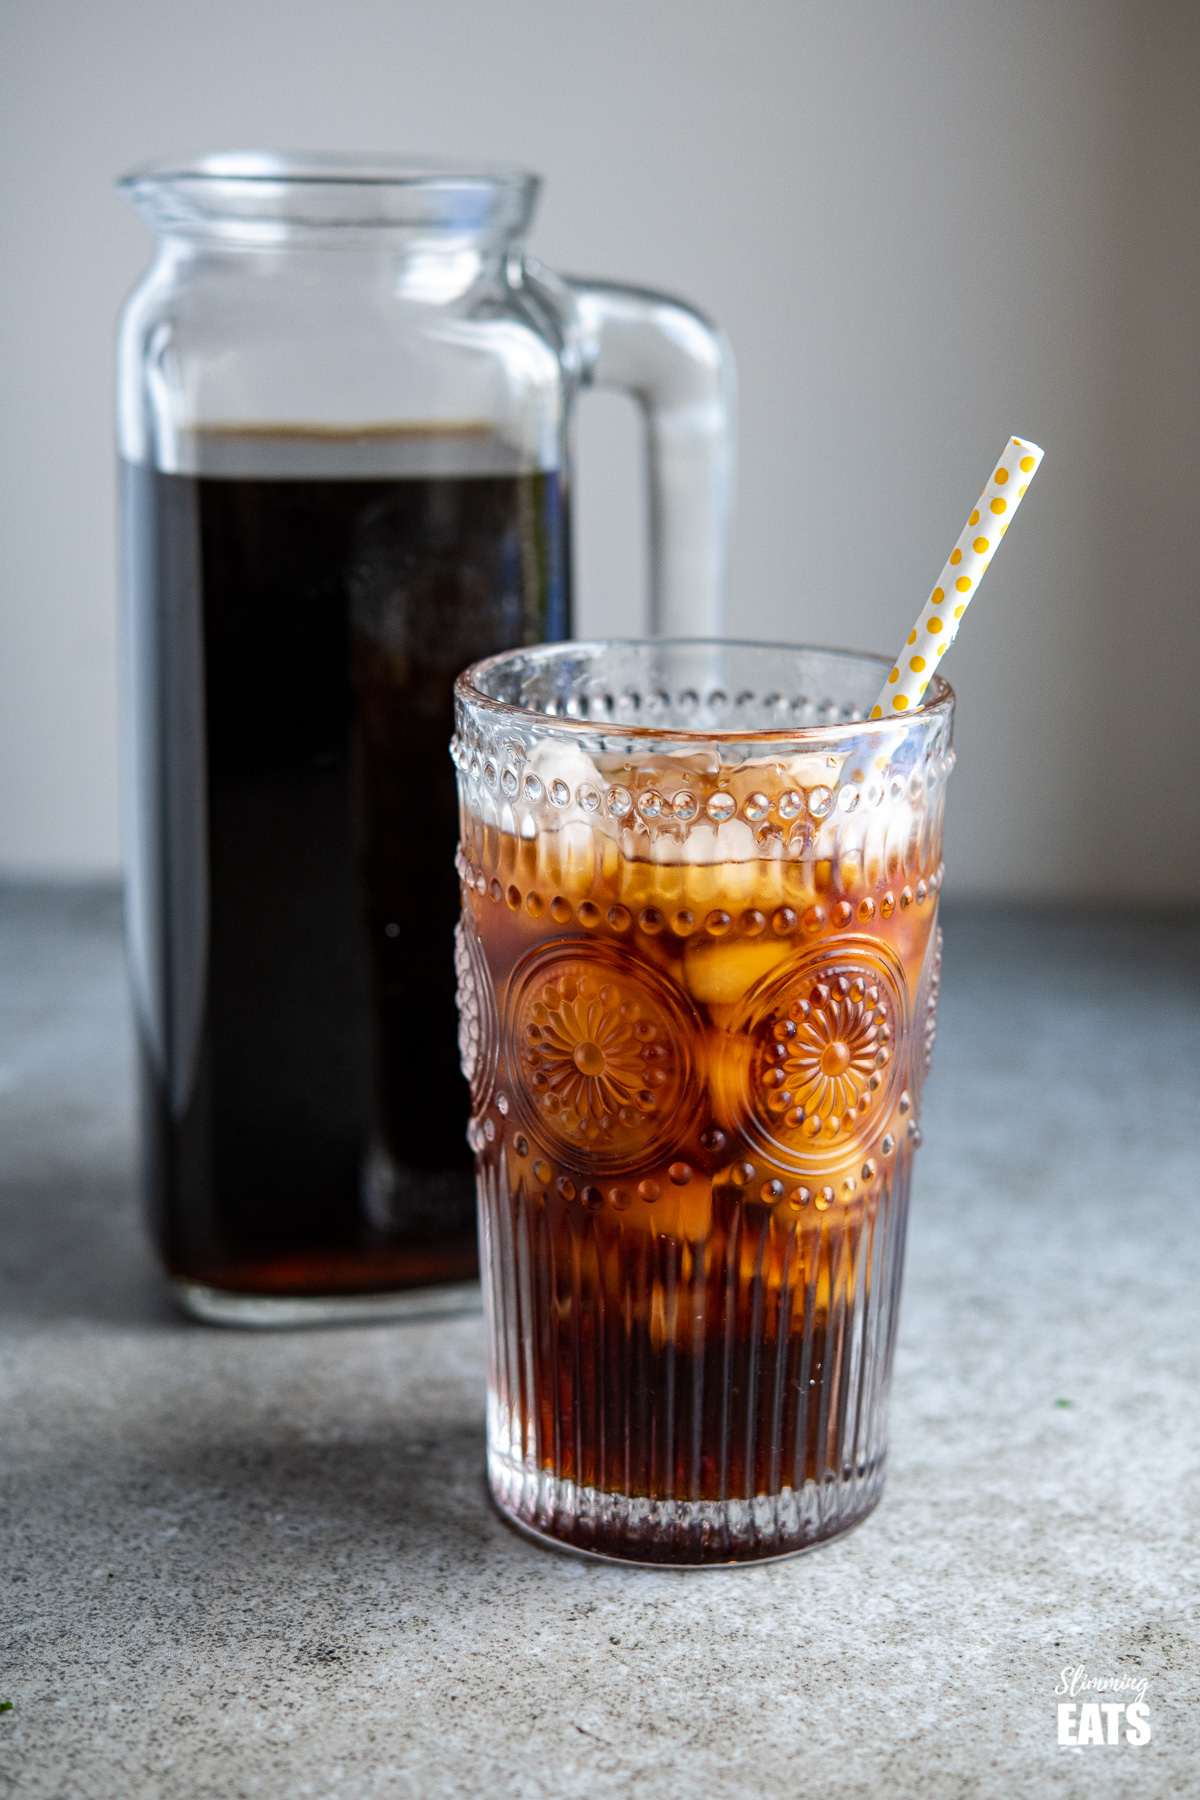 cold brew coffee with ice in a glass with yellow spotted white straw, jug of cold brew in background